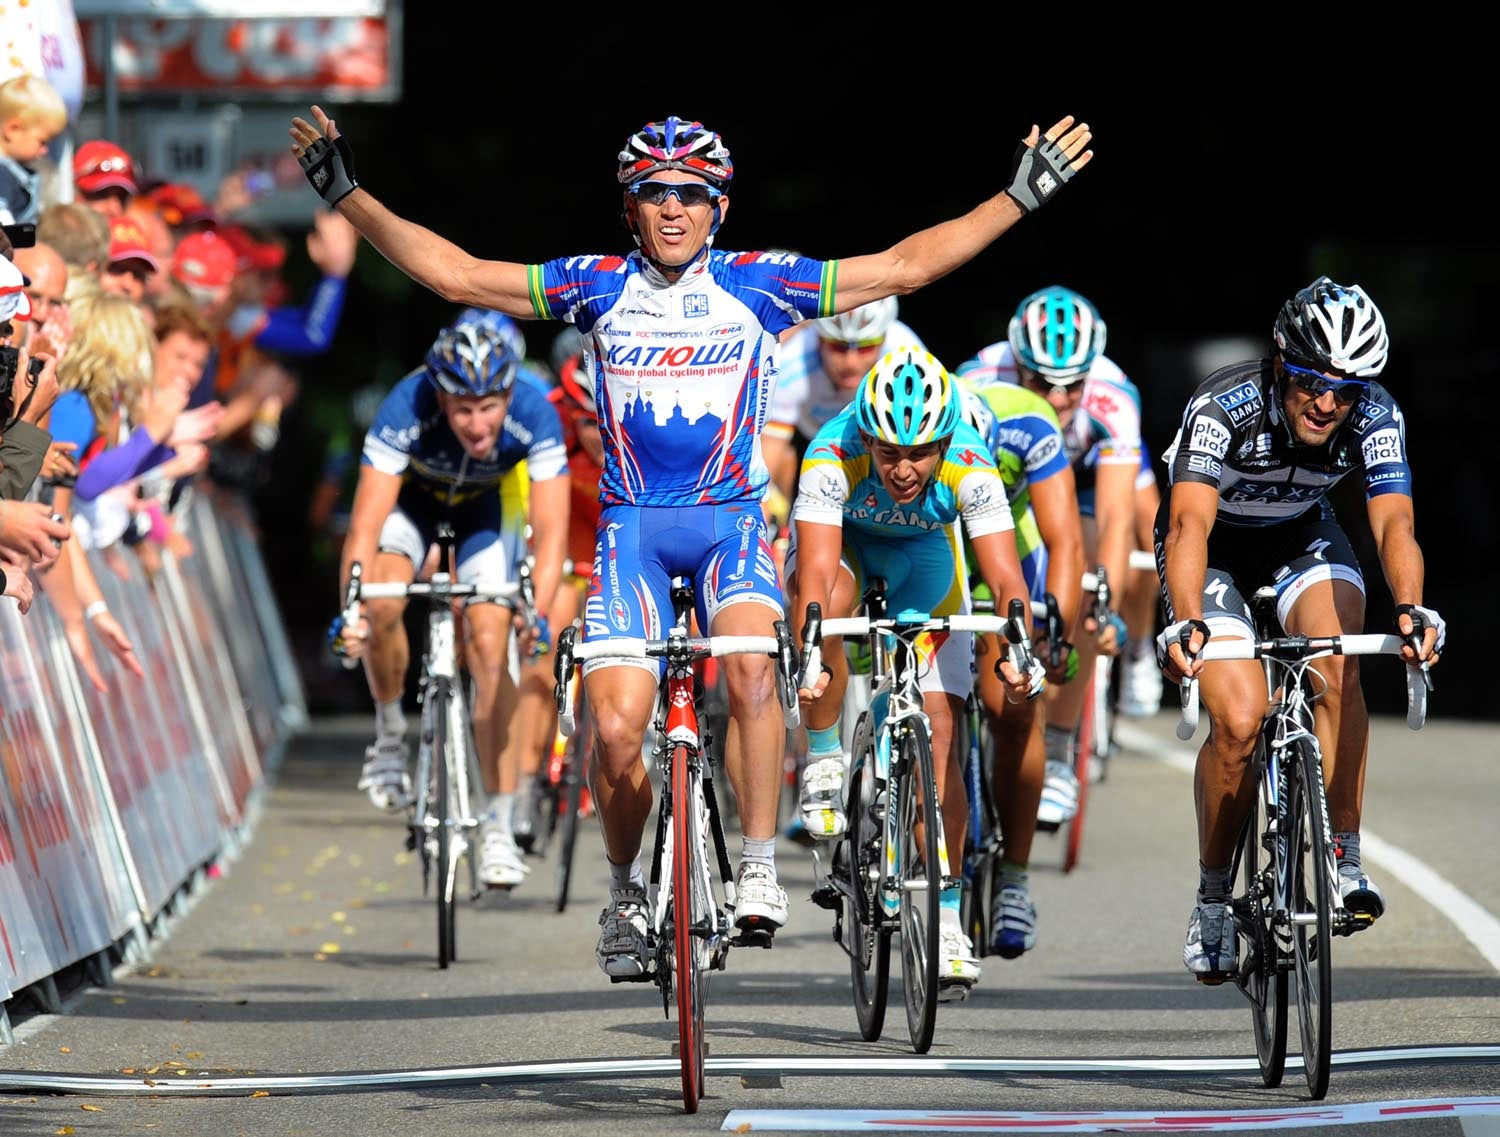 ROBBIE MCEWEN WINS STAGE ONE OF THE 2010 TOUR OF ENECO